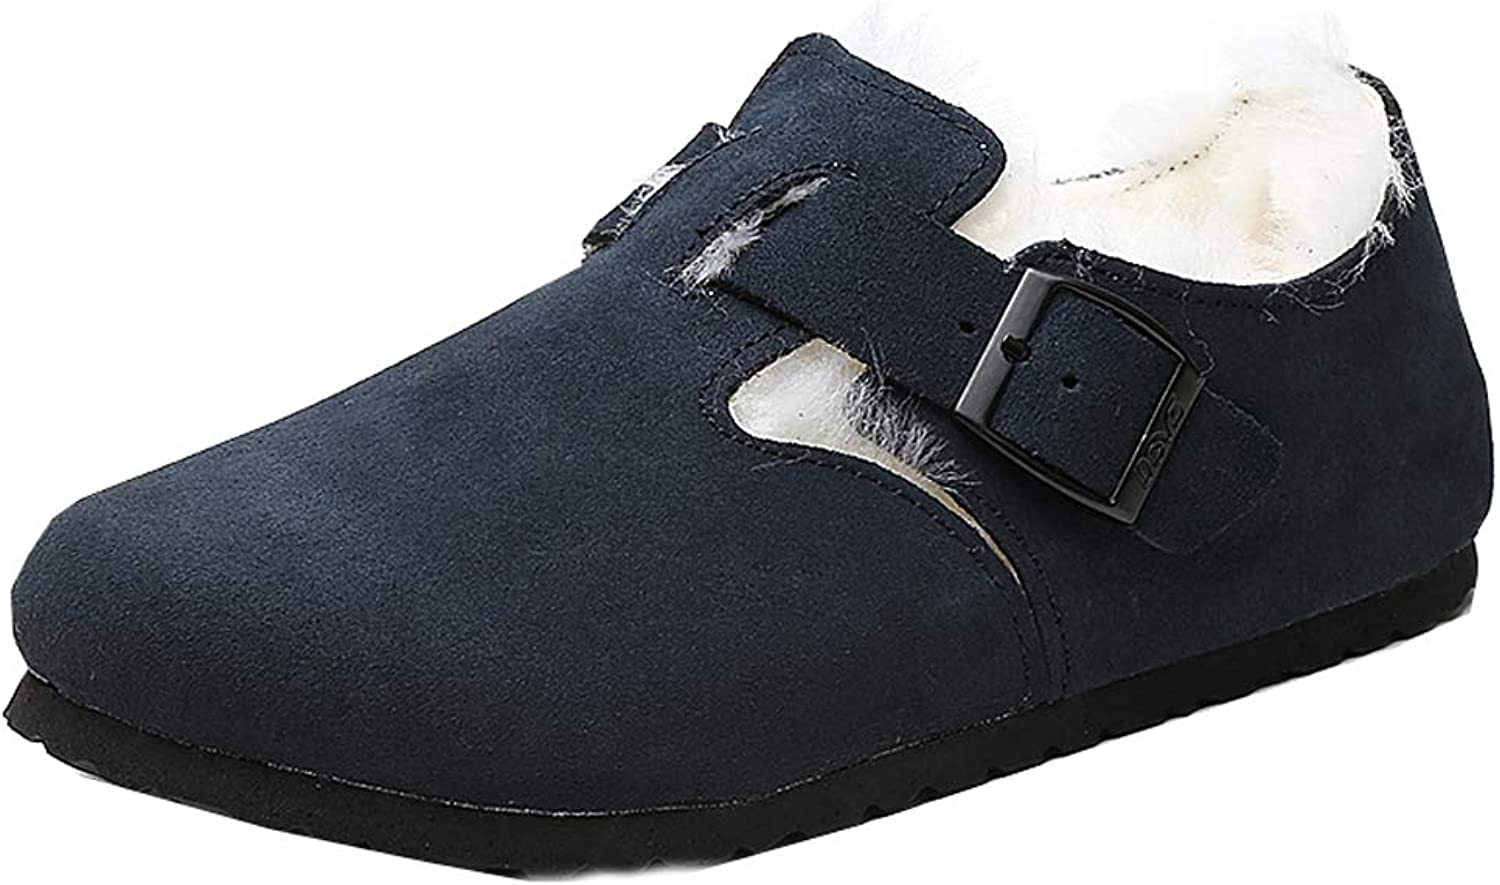 UBCA-DEVO Women Sole Wool Lined Suede Indoor Outdoor Clog Flats Mules